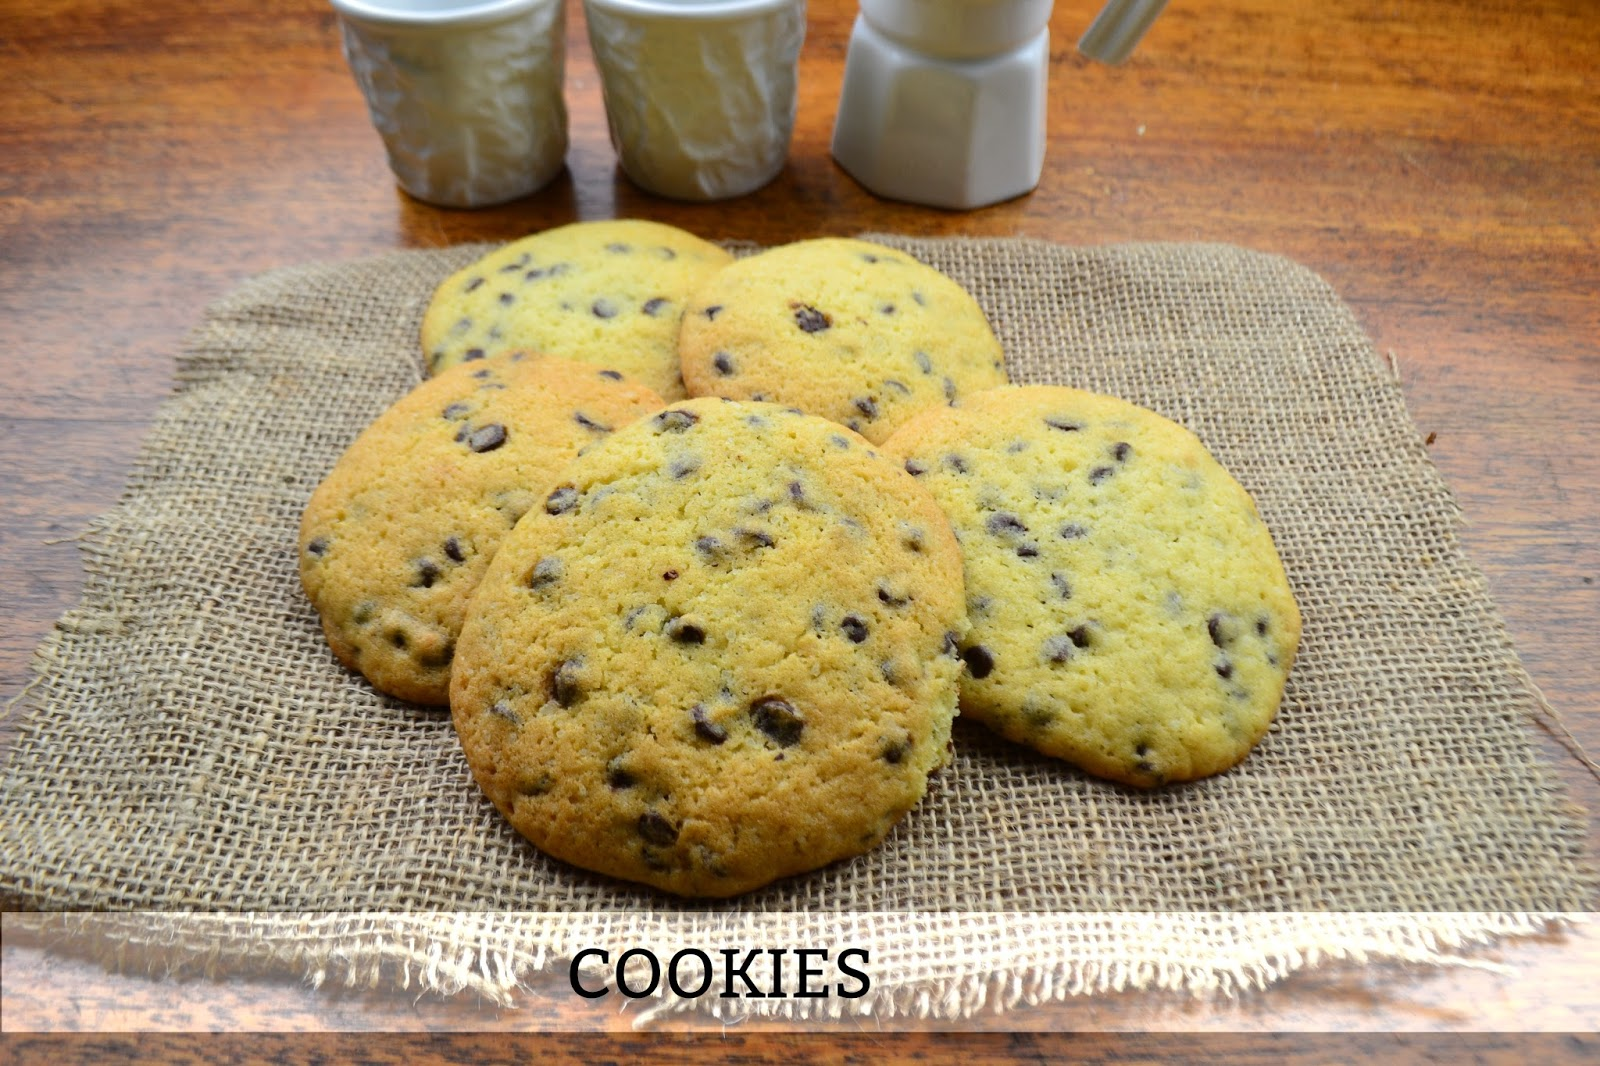 LA GAIA CUCINA DI PATTY...: Cookies